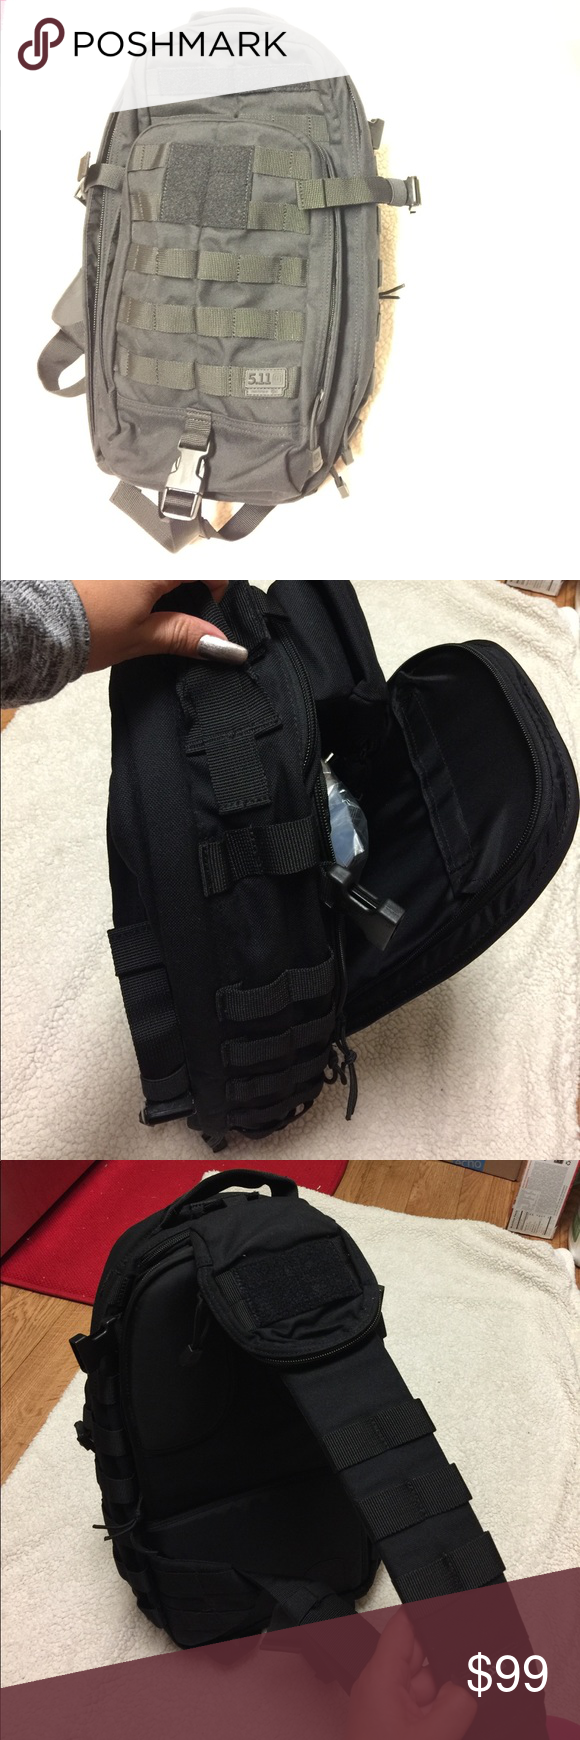 511 Tactical Multi-Use Backpack 🎒 511 Multi-Use Side Sling Backpack 🎒 New!! No Tags Use it to pack light, Hike, or to carry your laptop. 5.11 Tactical Bags Backpacks